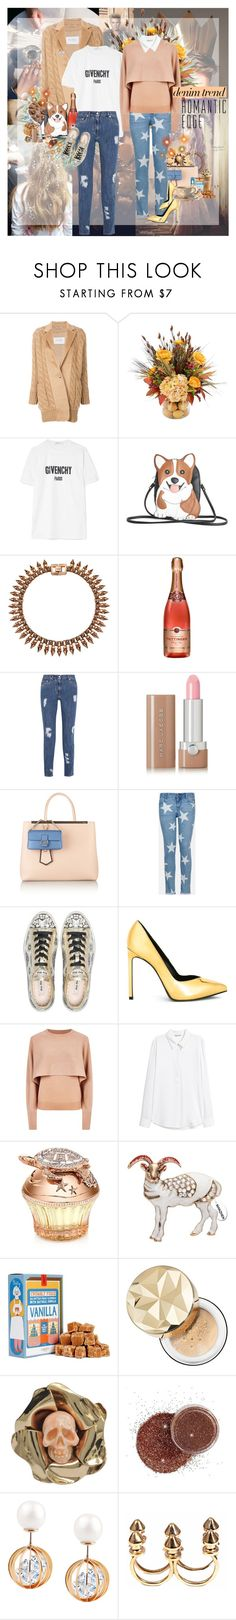 """Warm Colors"" by lady-redrise ❤ liked on Polyvore featuring KEEP ME, Agave, MaxMara, Frontgate, Givenchy, Mawi, Moschino, Marc Jacobs, Fendi and STELLA McCARTNEY"